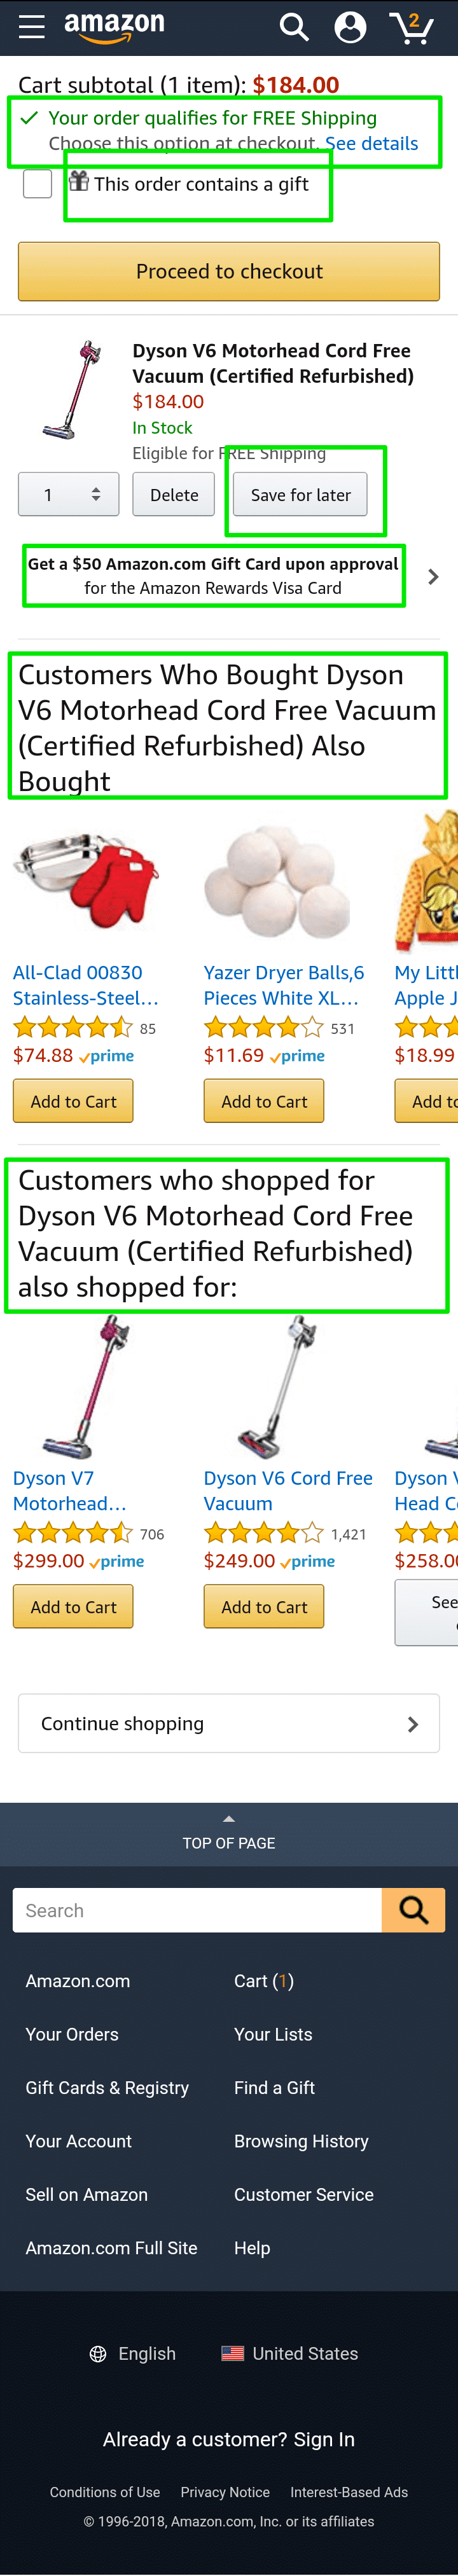 Amazon online store cart